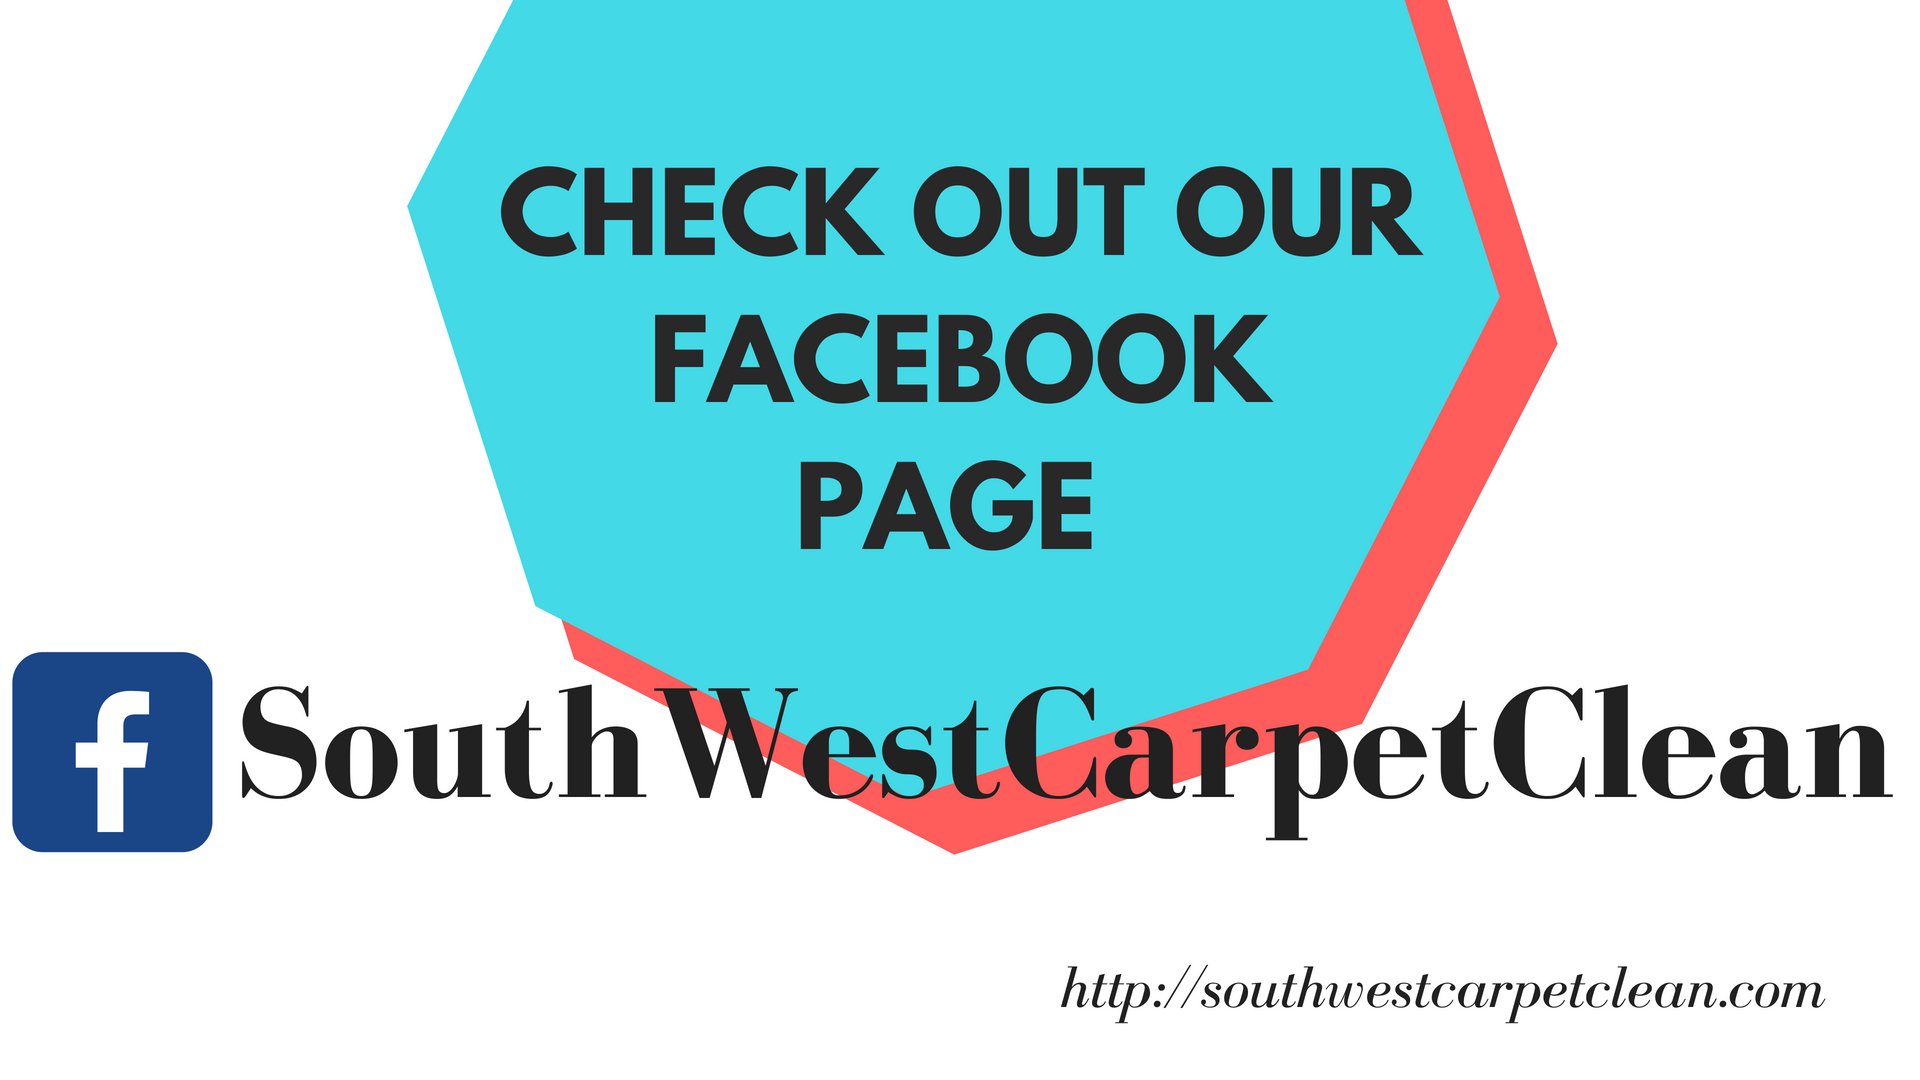 South West Carpet Clean on Facebook